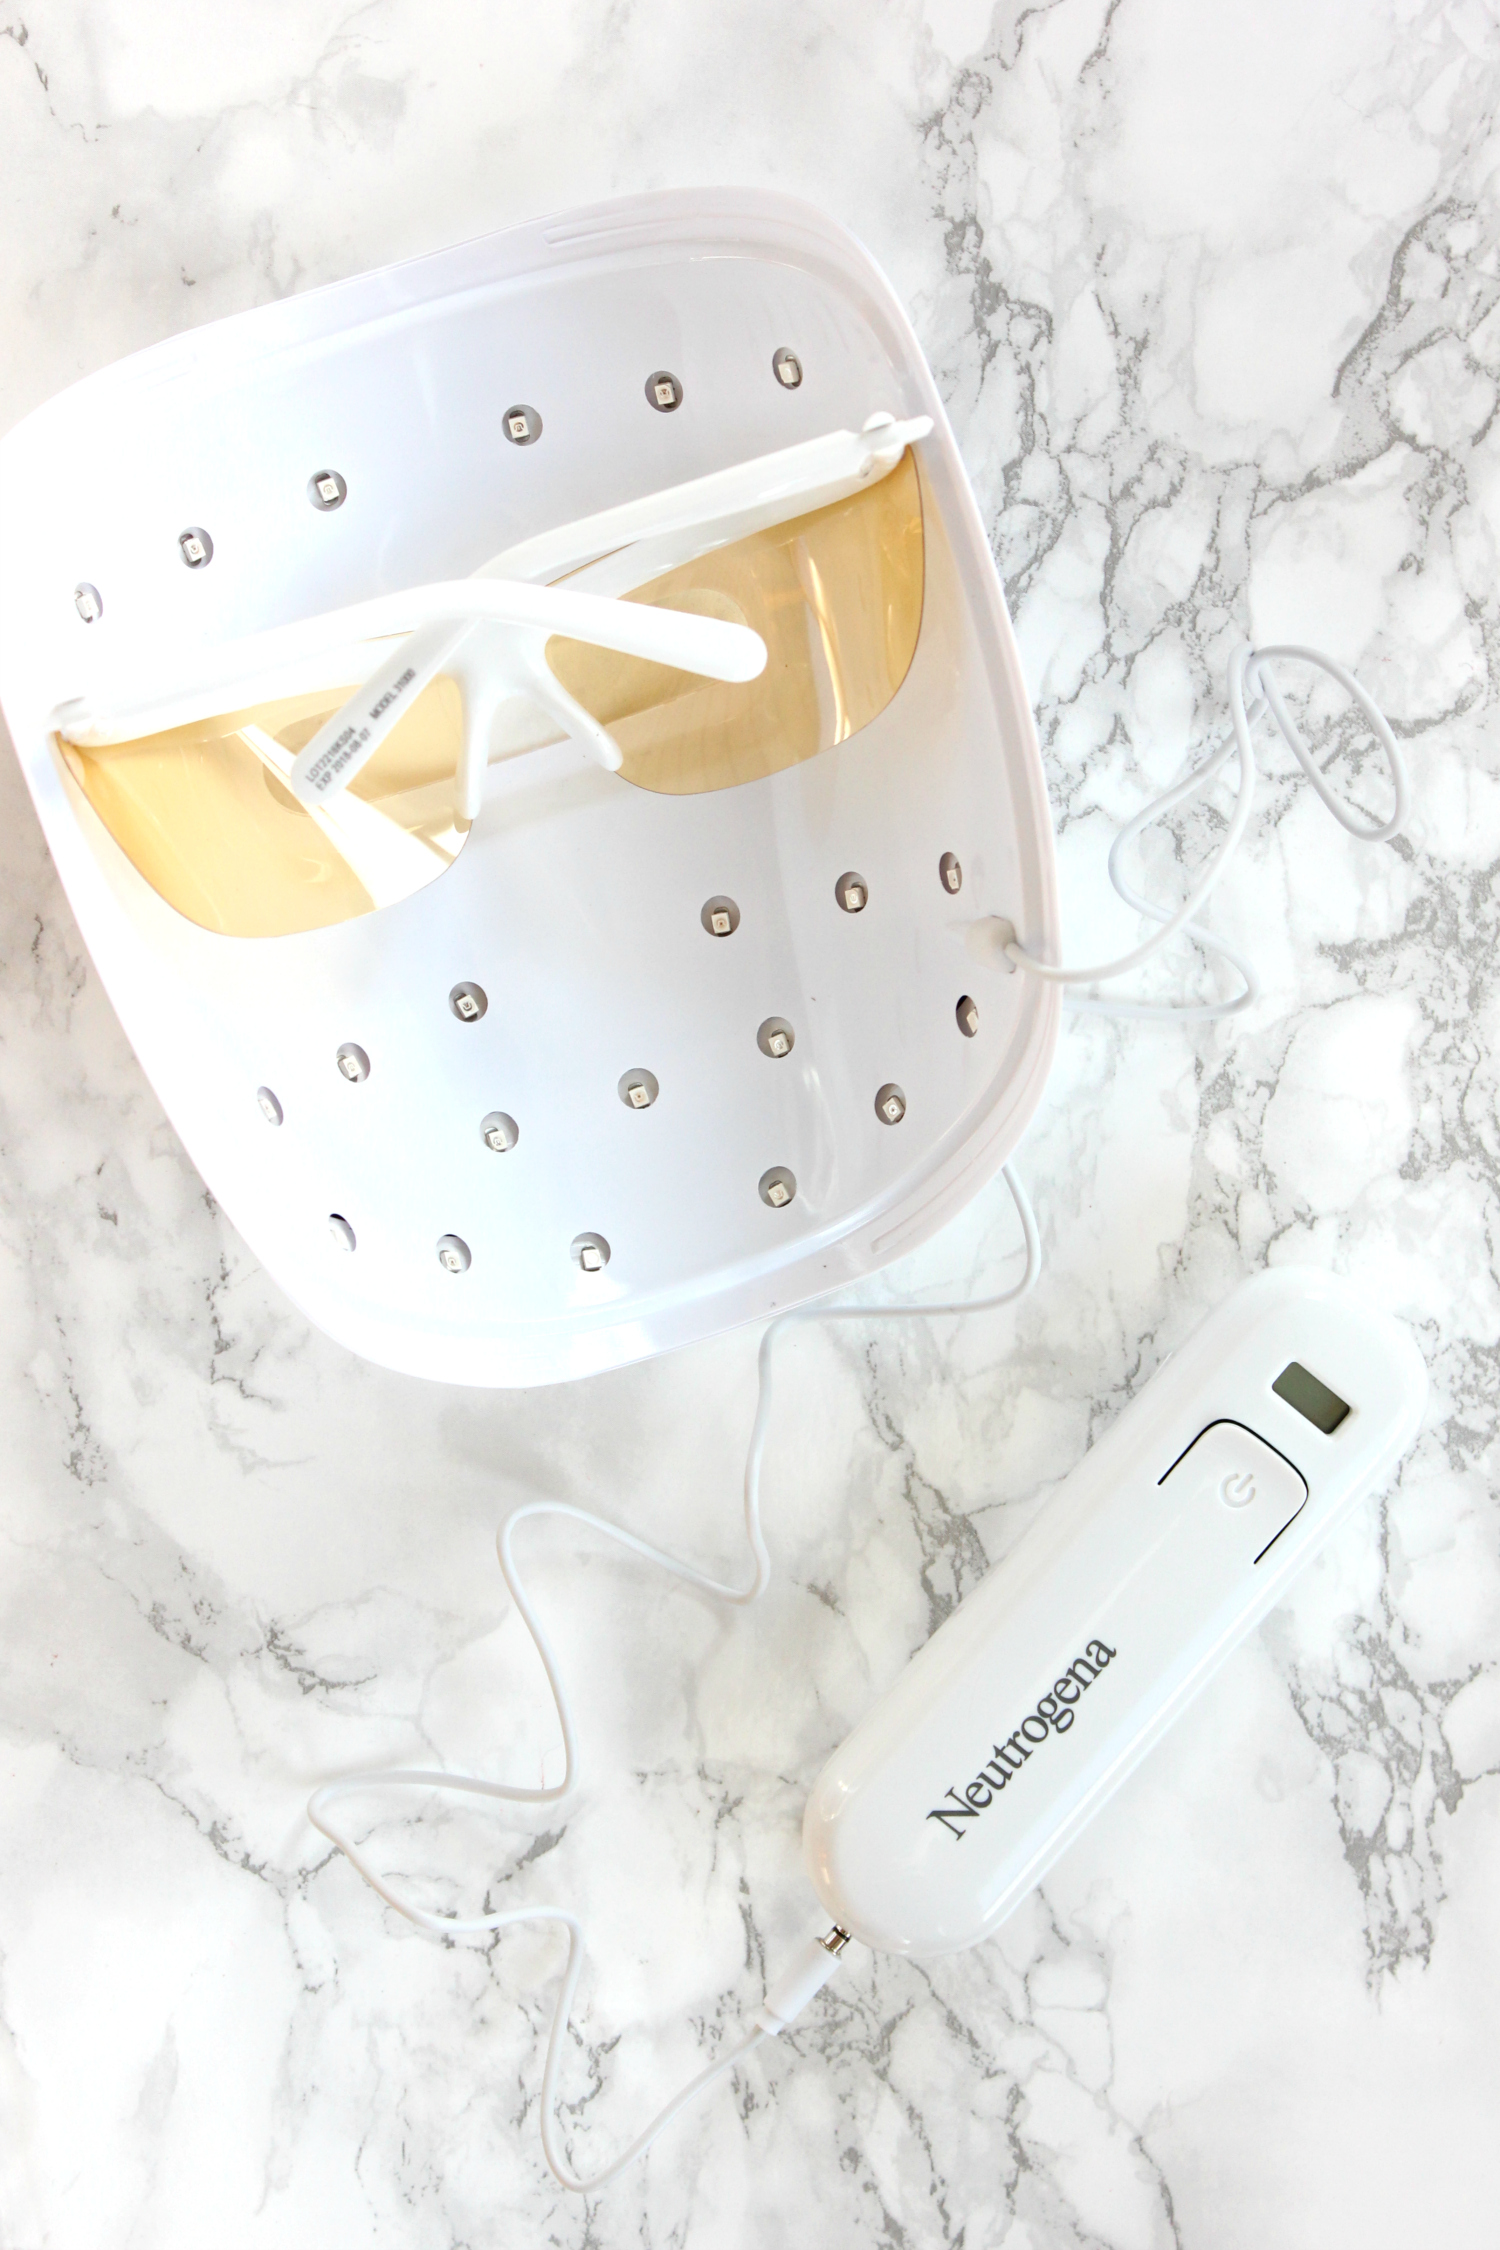 Testing out the power of light therapy to treat breakouts with the new Neutrogena Light Therapy Acne Mask